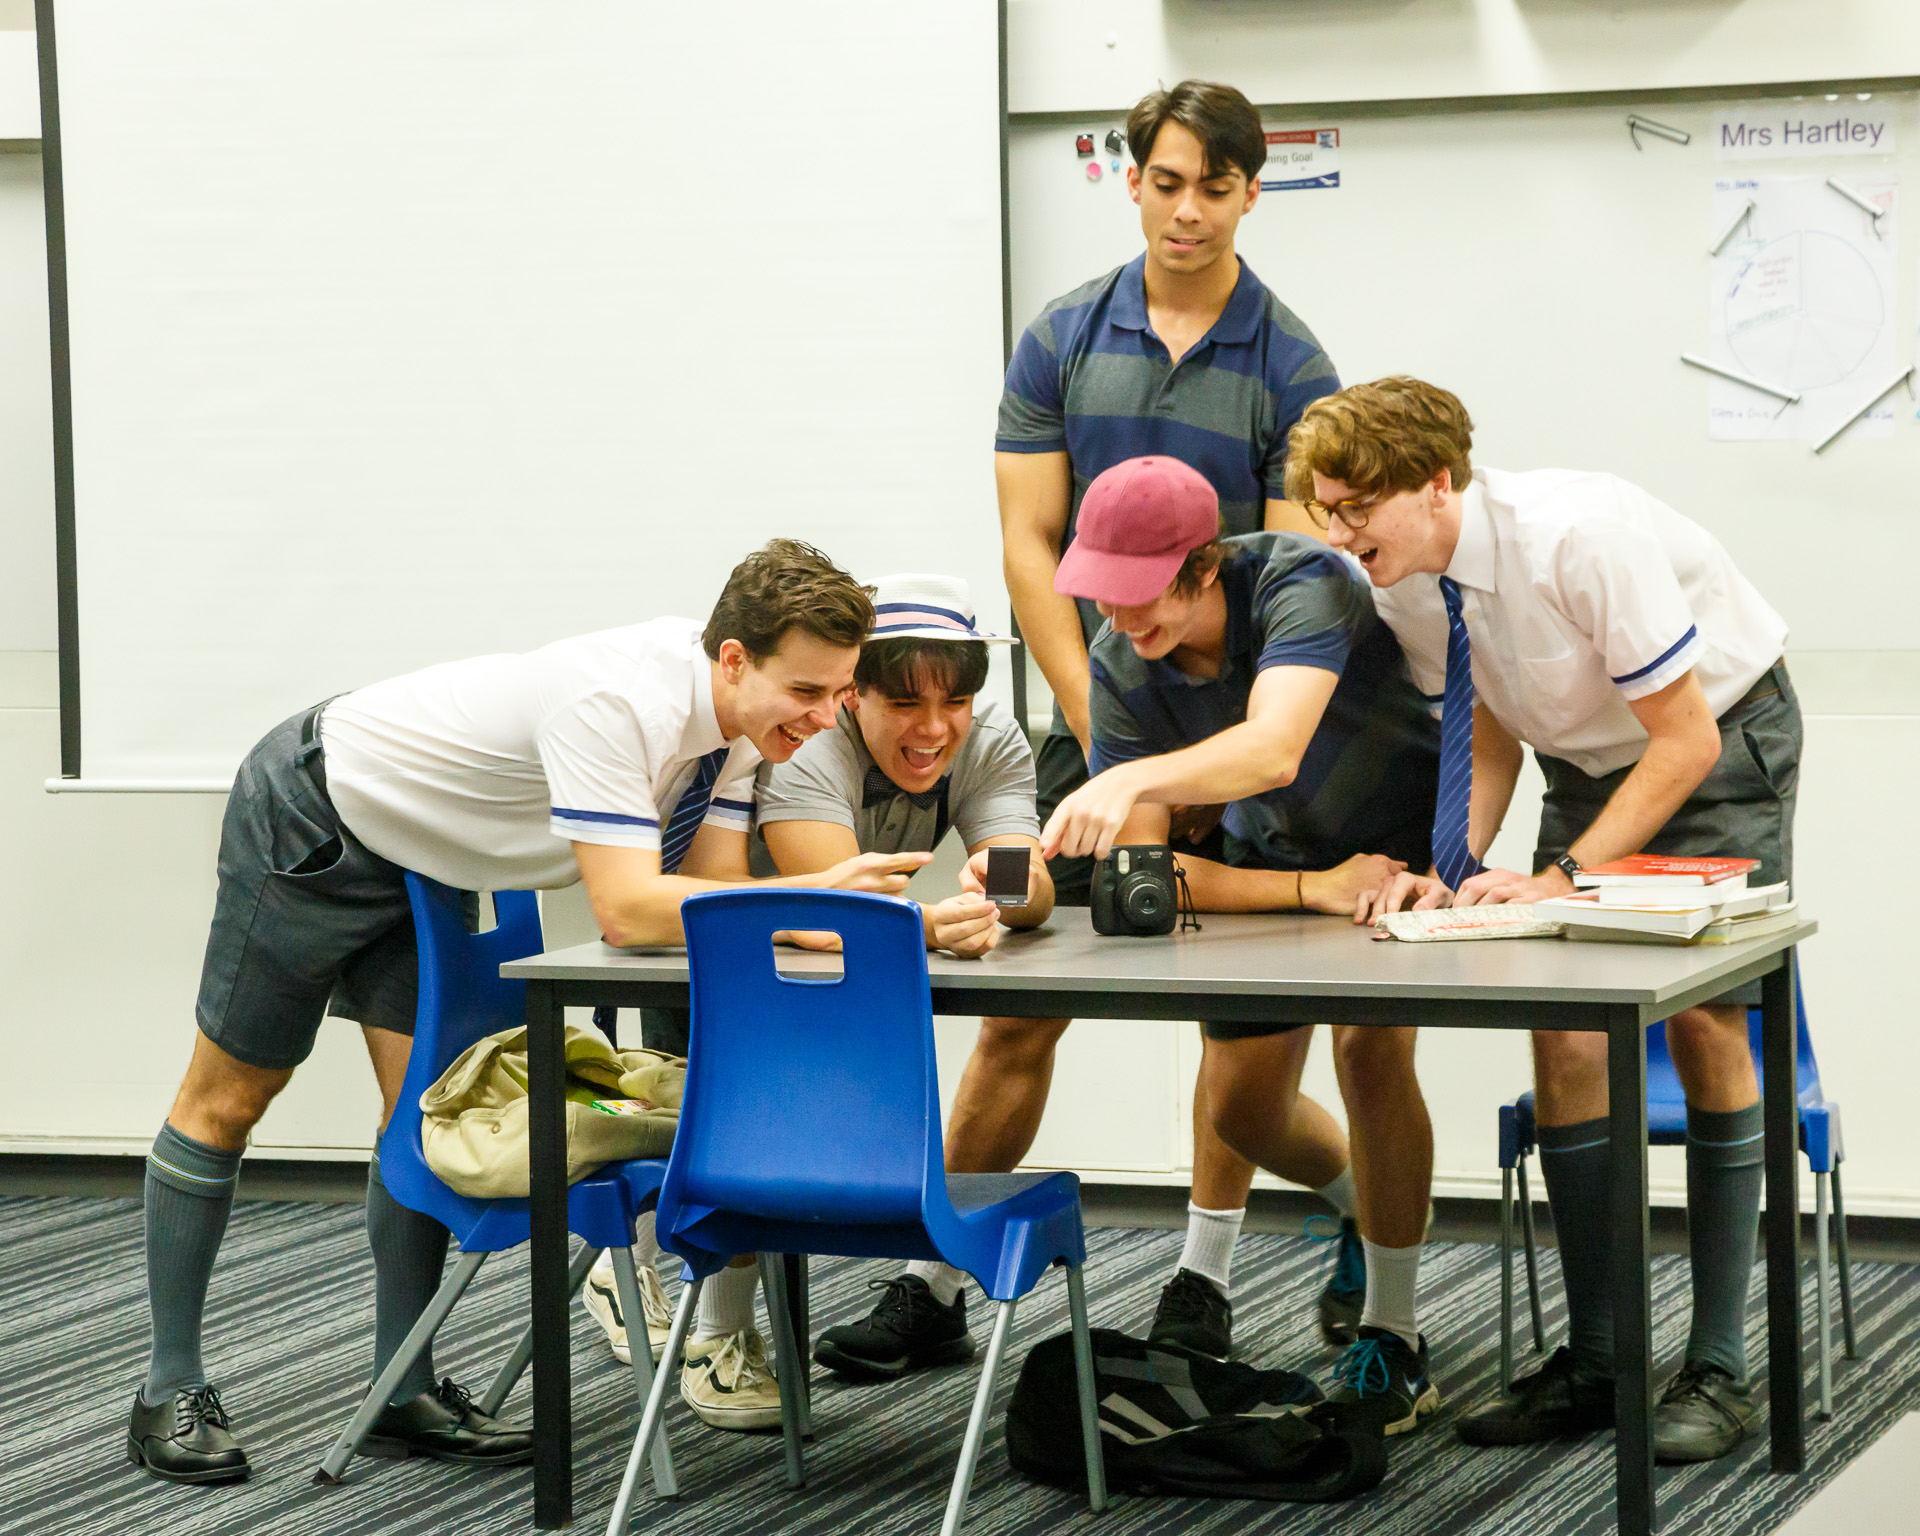 Pictured (L to R): Noah (Brodie Greenhalgh), Byron (Peter Wood), Jock (Dean Taylor), Simon (Caeleb Grosser), and Cam (Levi Wilcox) in  Signs . Picture credit: Geoff Lawrence, Creative Futures.